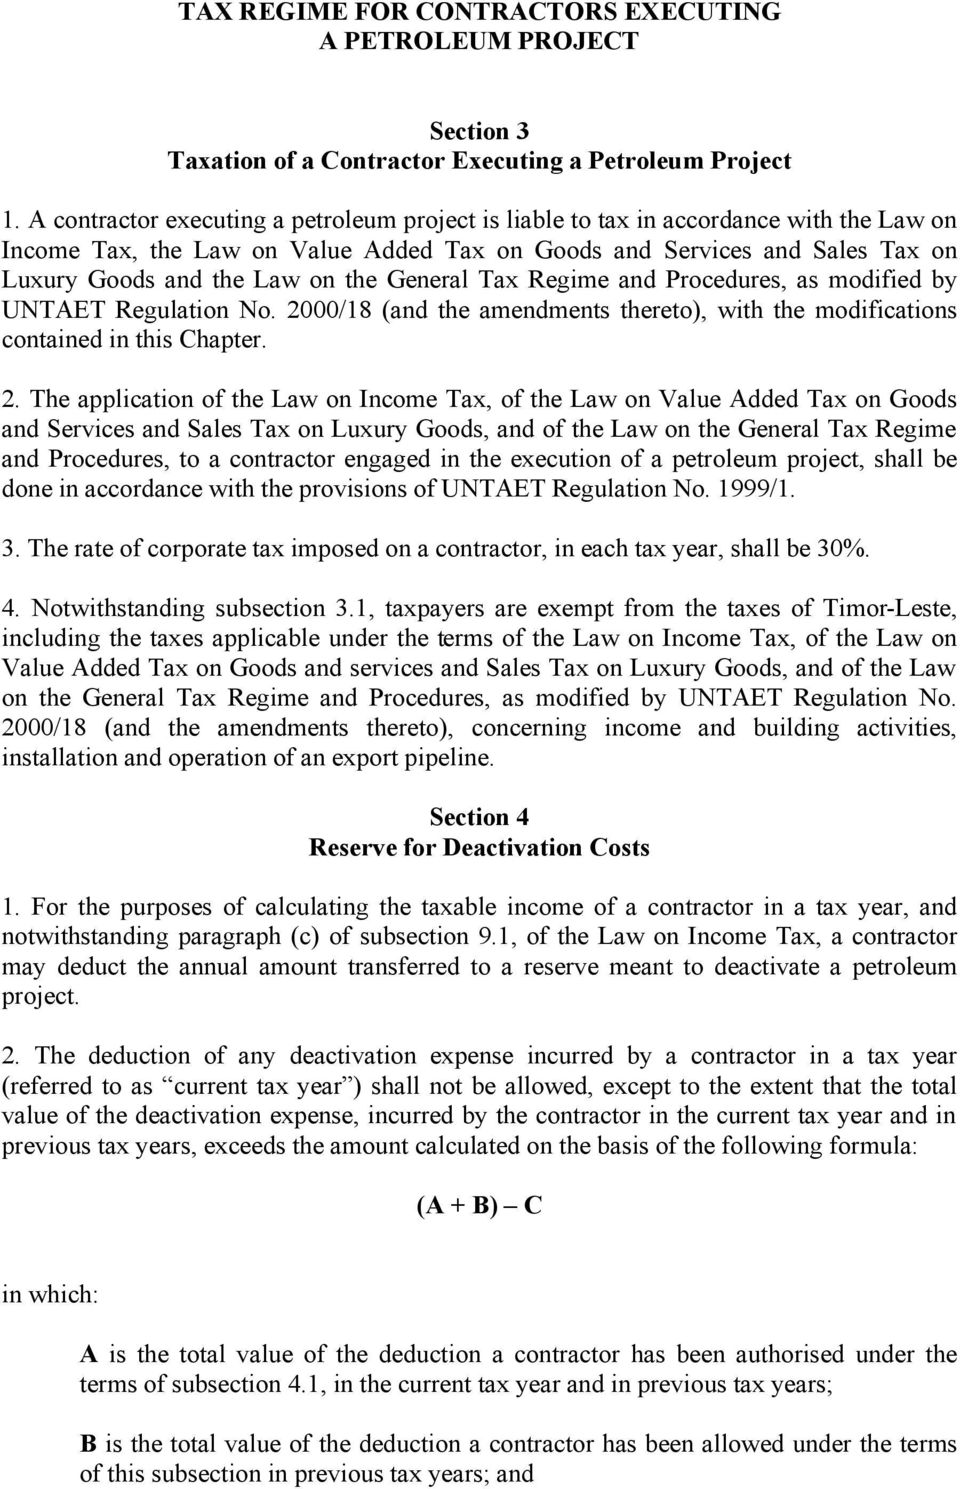 General Tax Regime and Procedures, as modified by UNTAET Regulation No. 20